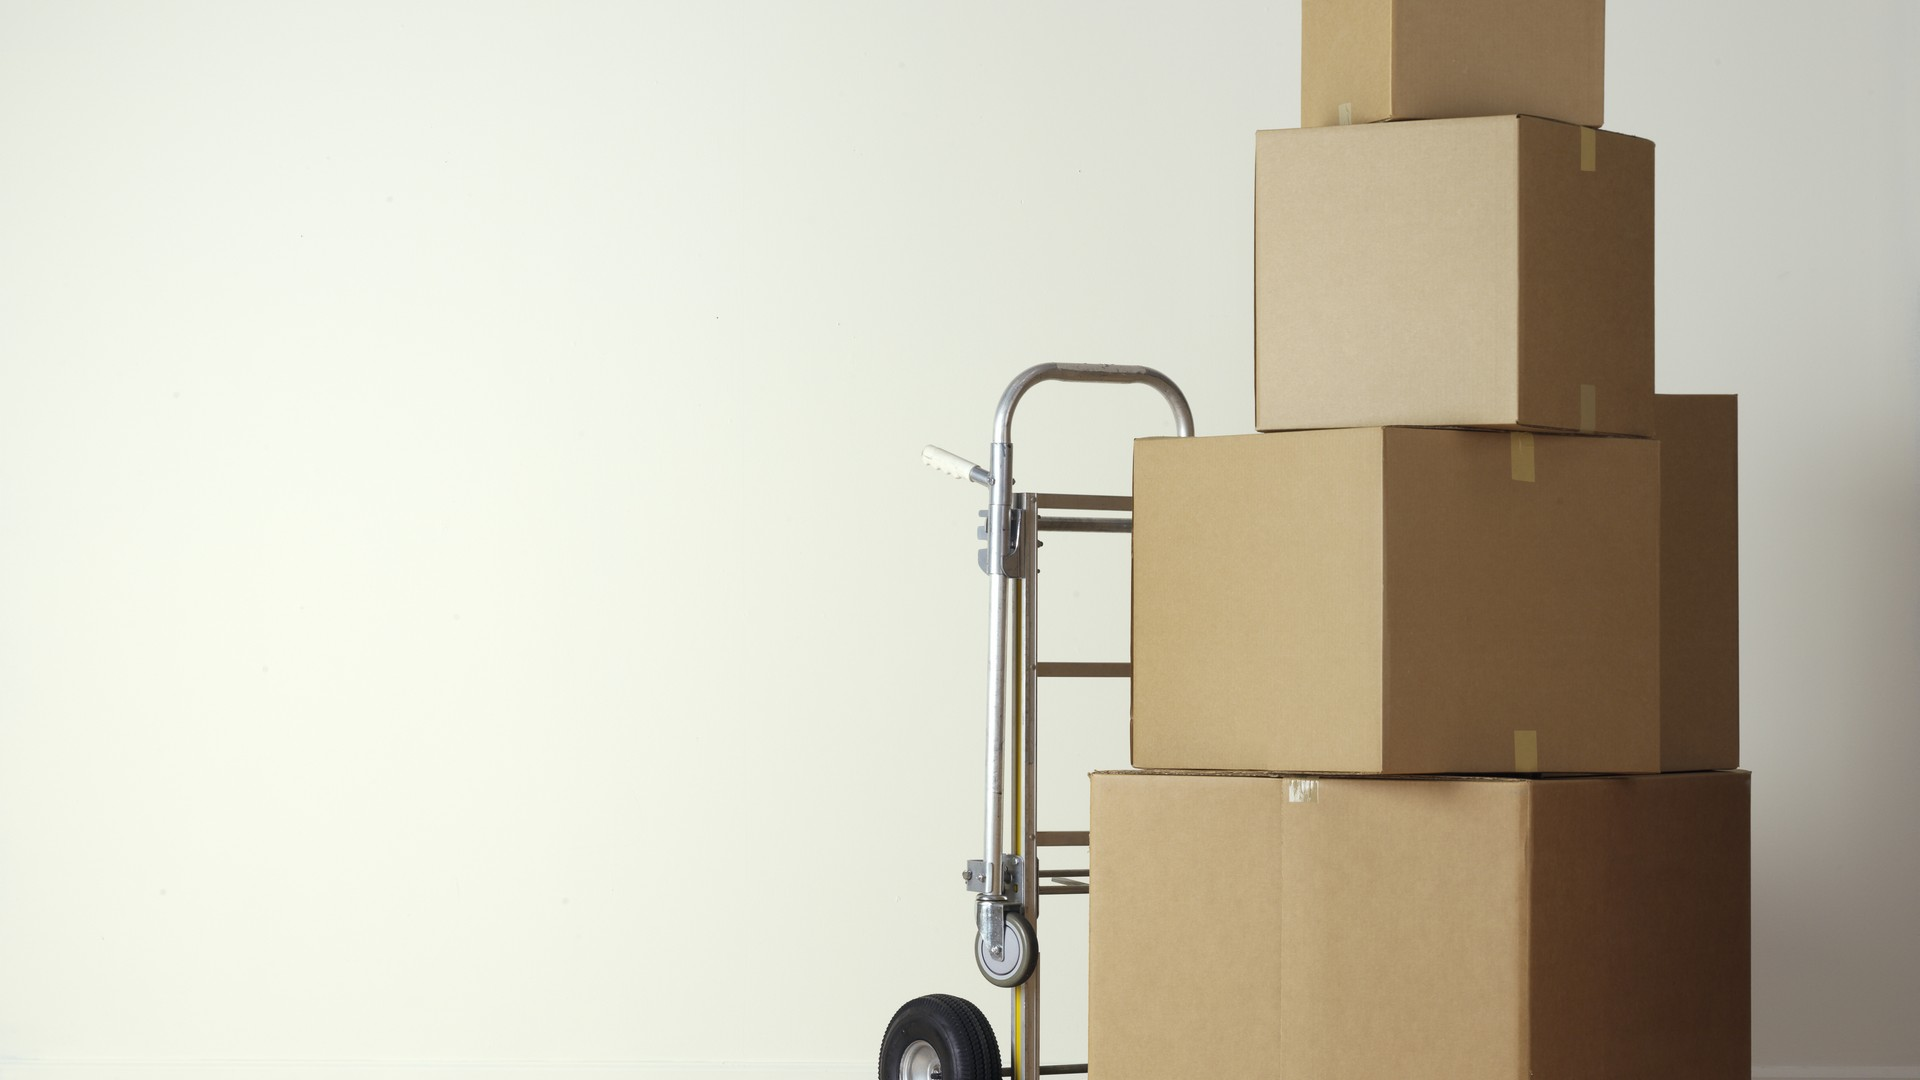 TIPS FOR PACKING AND MOVING QUICKLY